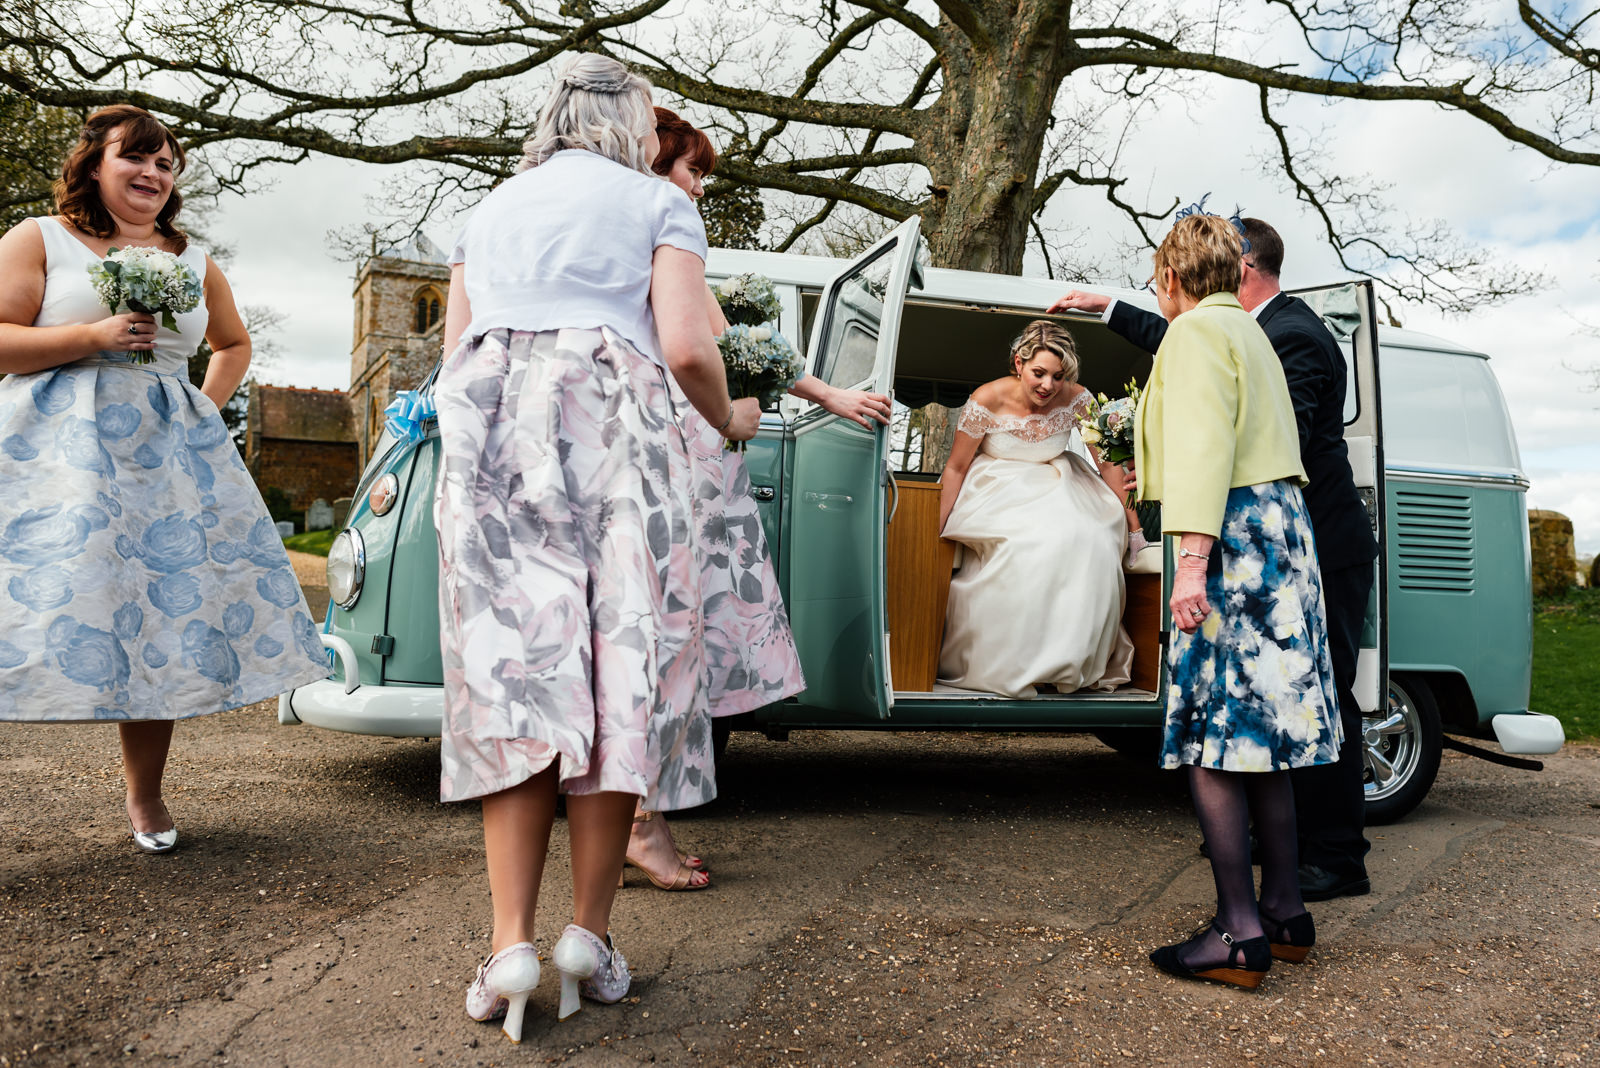 bride leaving camper van